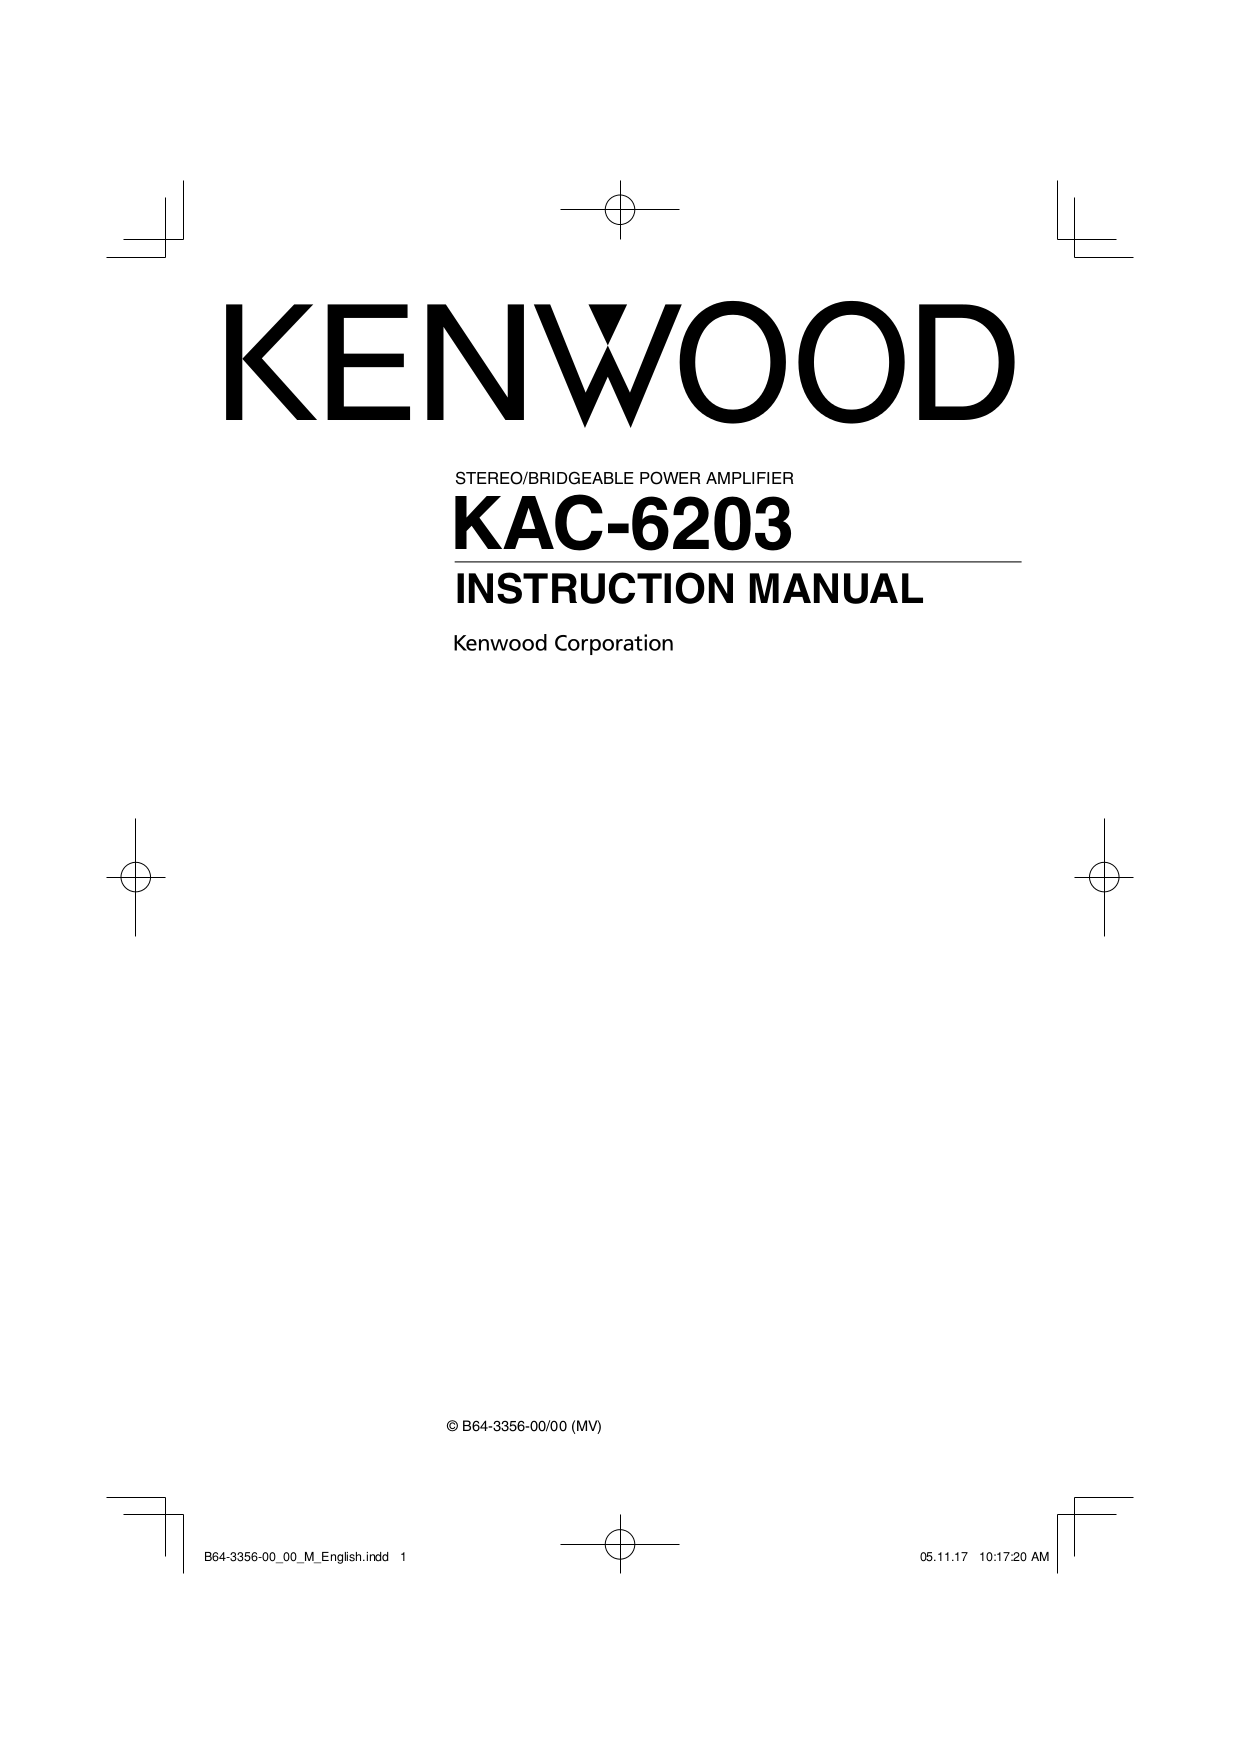 KAC 6203 ins manual.pdf 0 pdf manual for kenwood amp kac 622 kenwood kac-622 wiring harness at soozxer.org